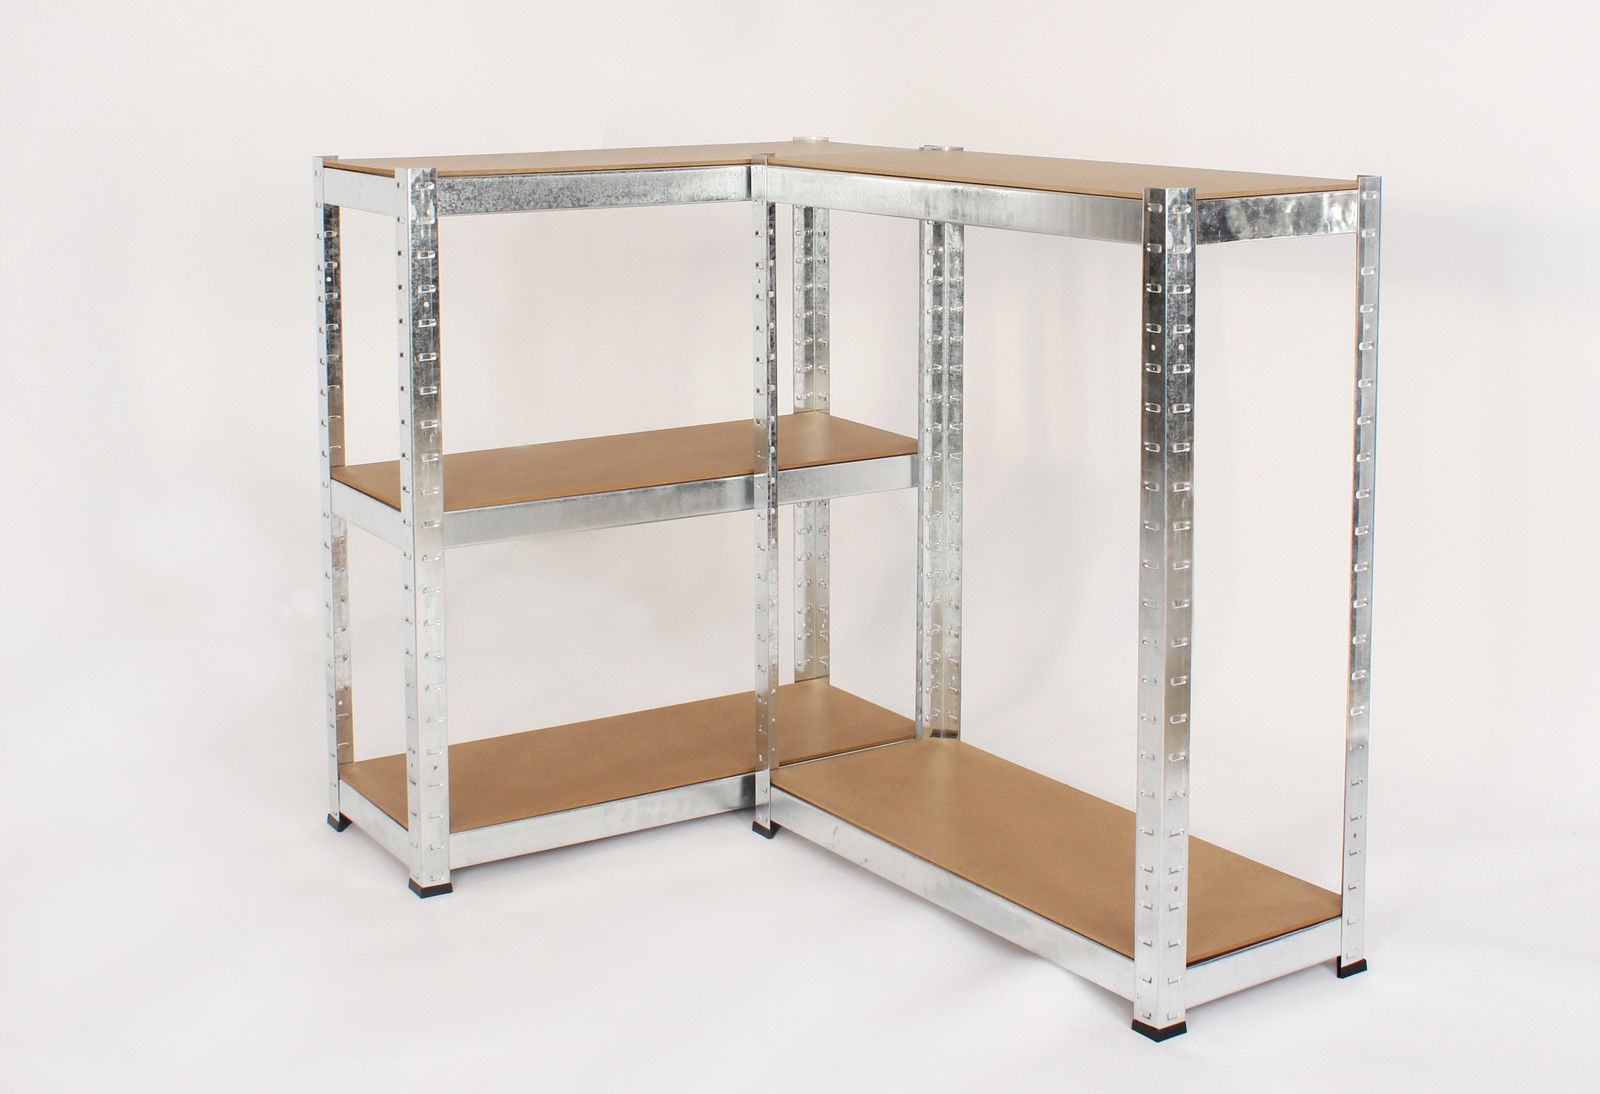 Heavy Duty Garage Storage Racks : Heavy duty metal racking tier garage storage shelf